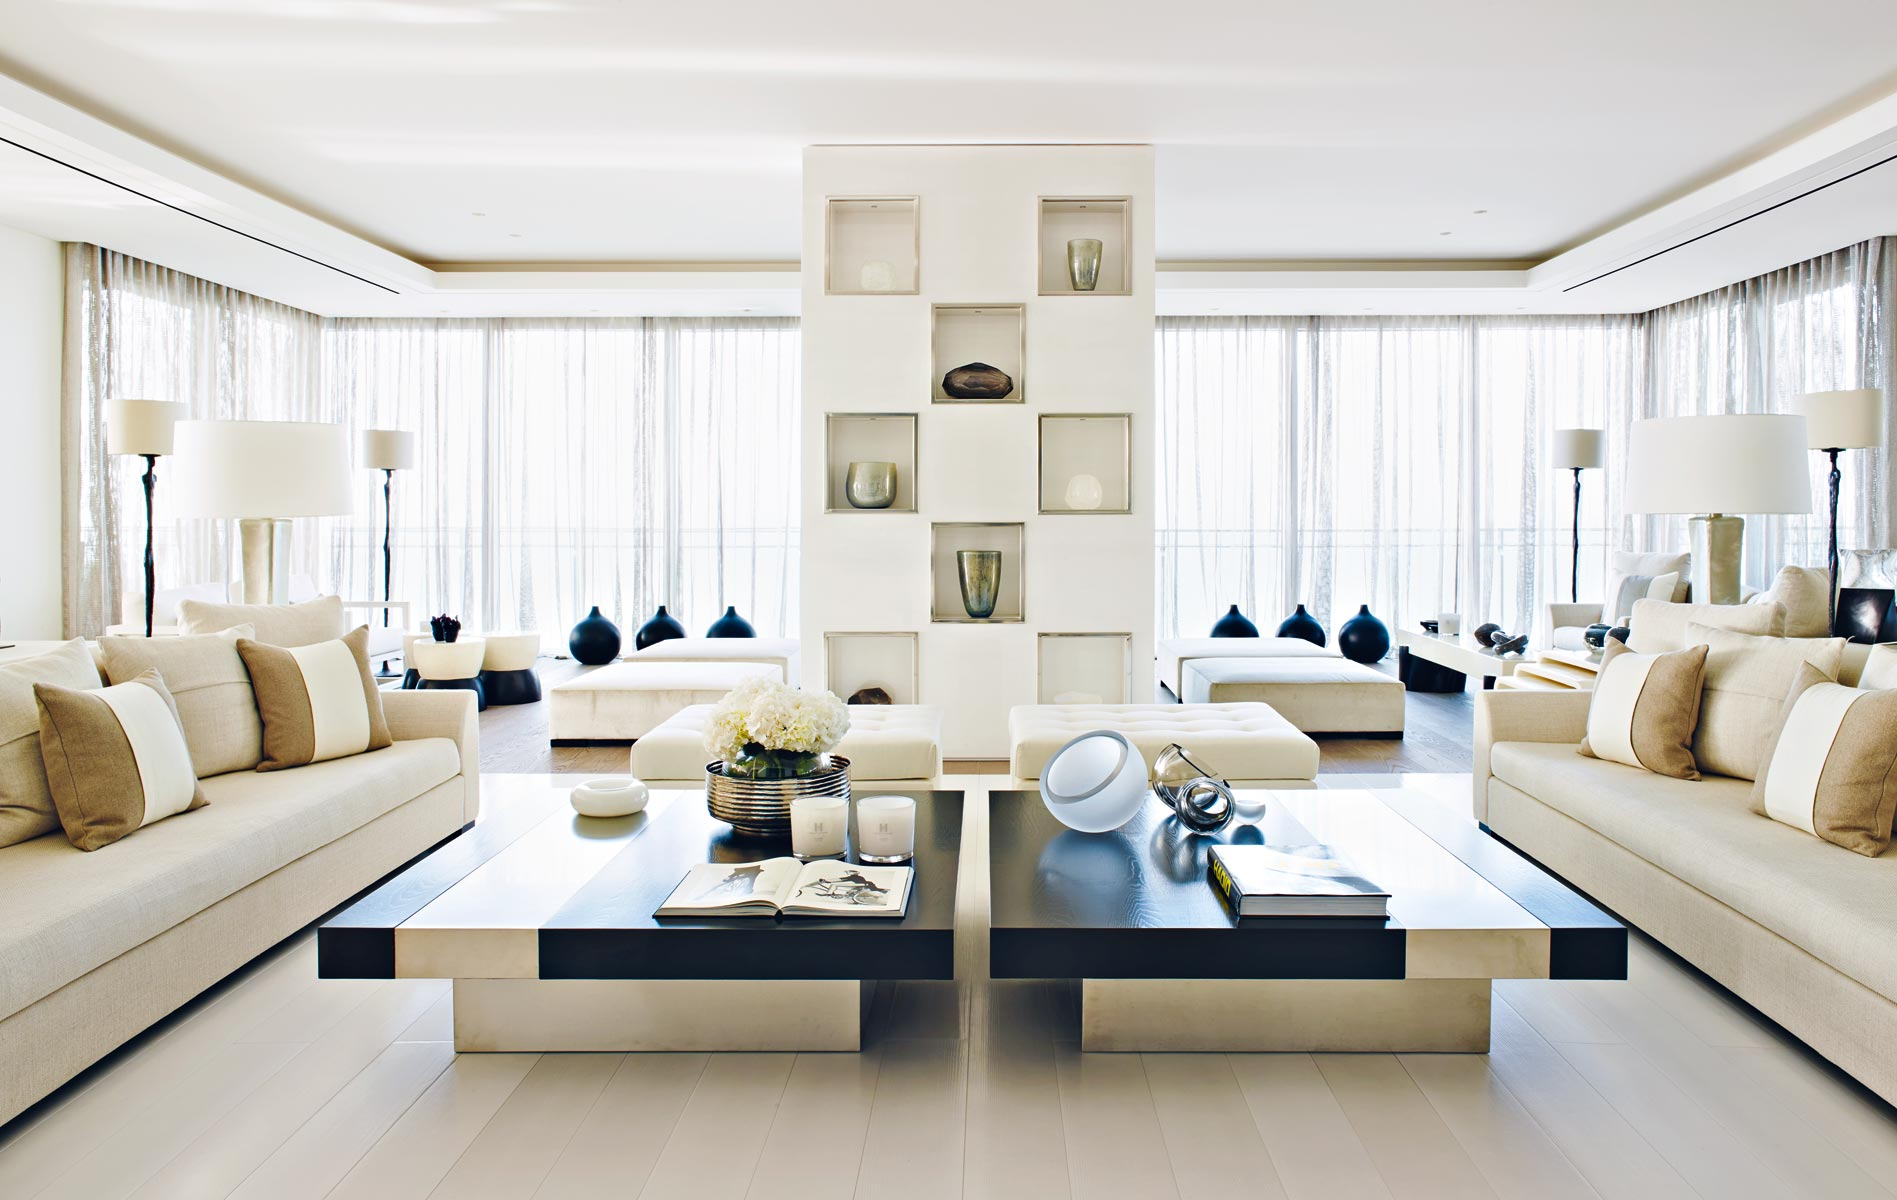 Top 10 kelly hoppen design ideas for Beautiful houses and interior designs